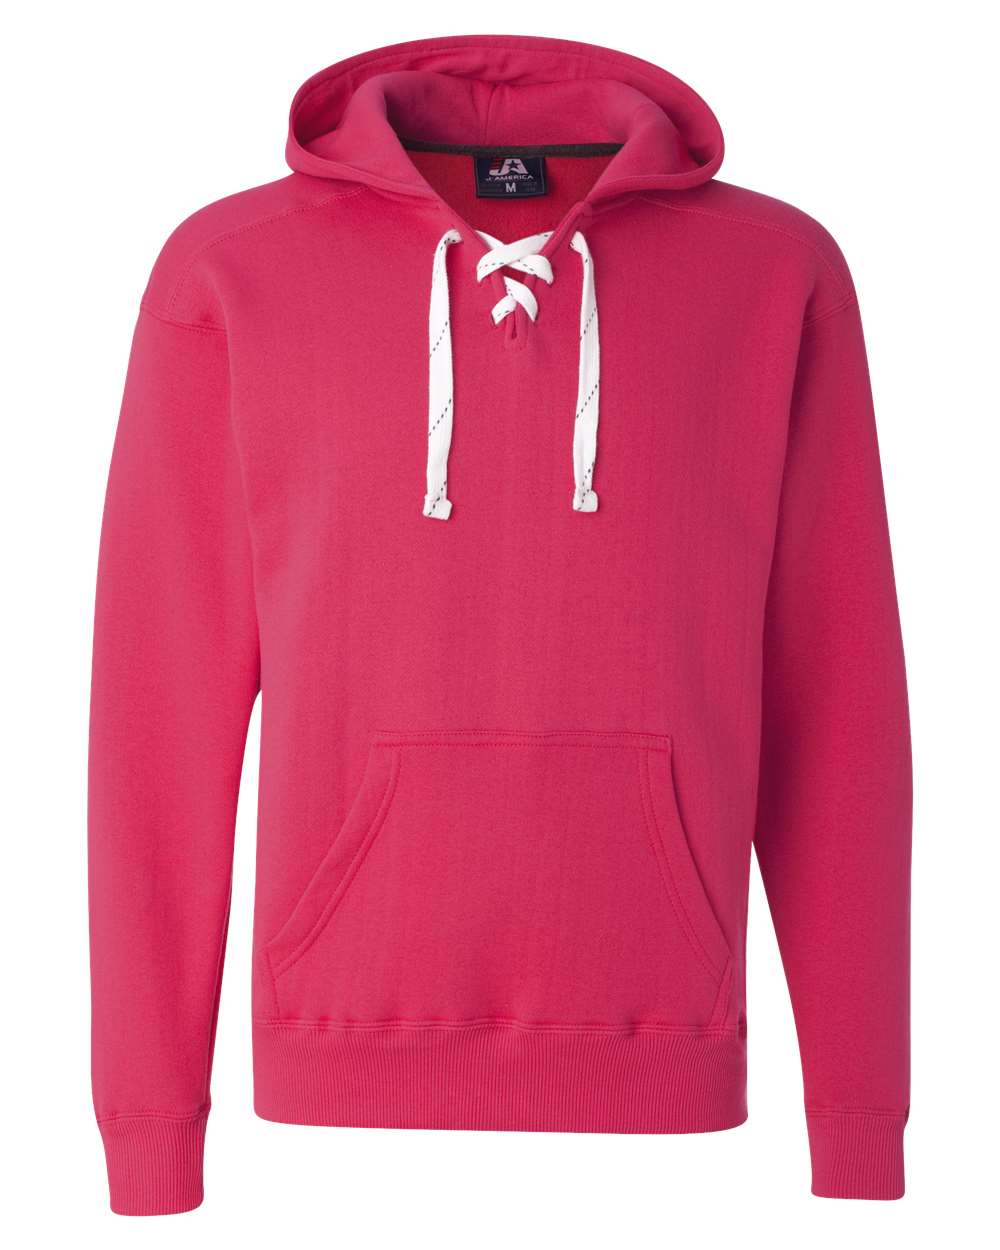 J-America-Mens-Blank-Sport-Lace-Hooded-Sweatshirt-8830-up-to-3XL thumbnail 30